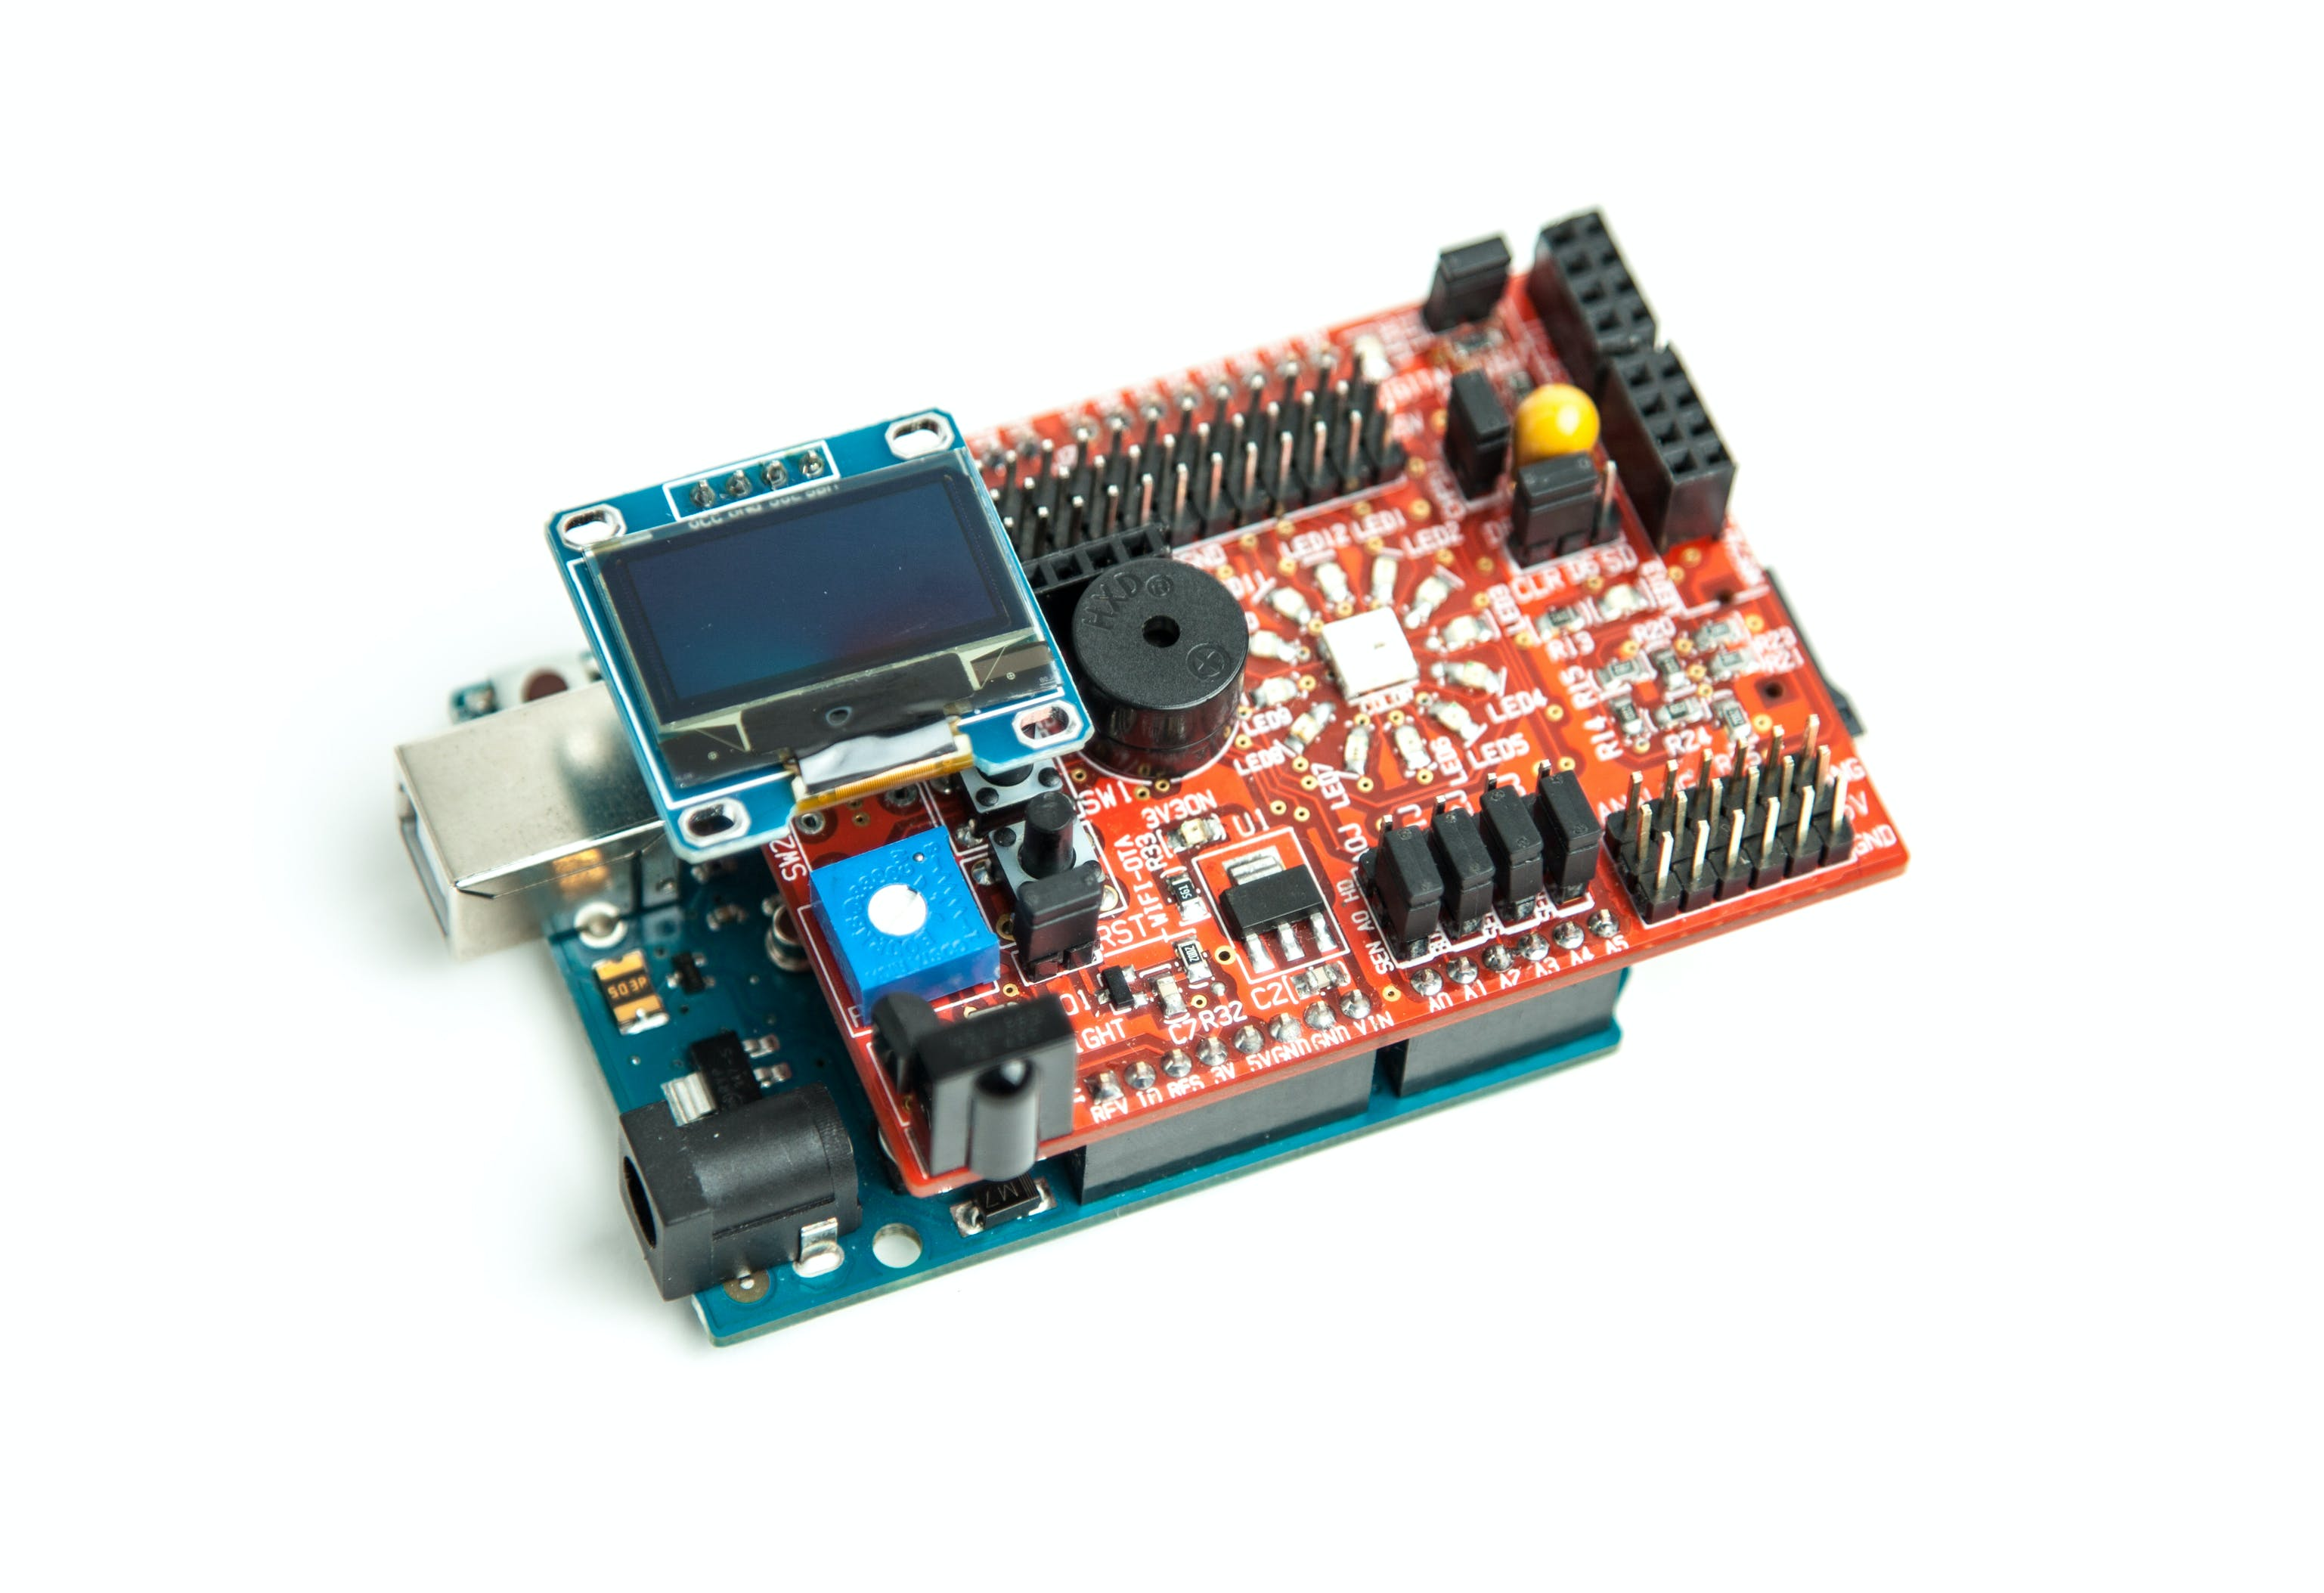 Connecting i2c oled display as shown in photo on i2c header